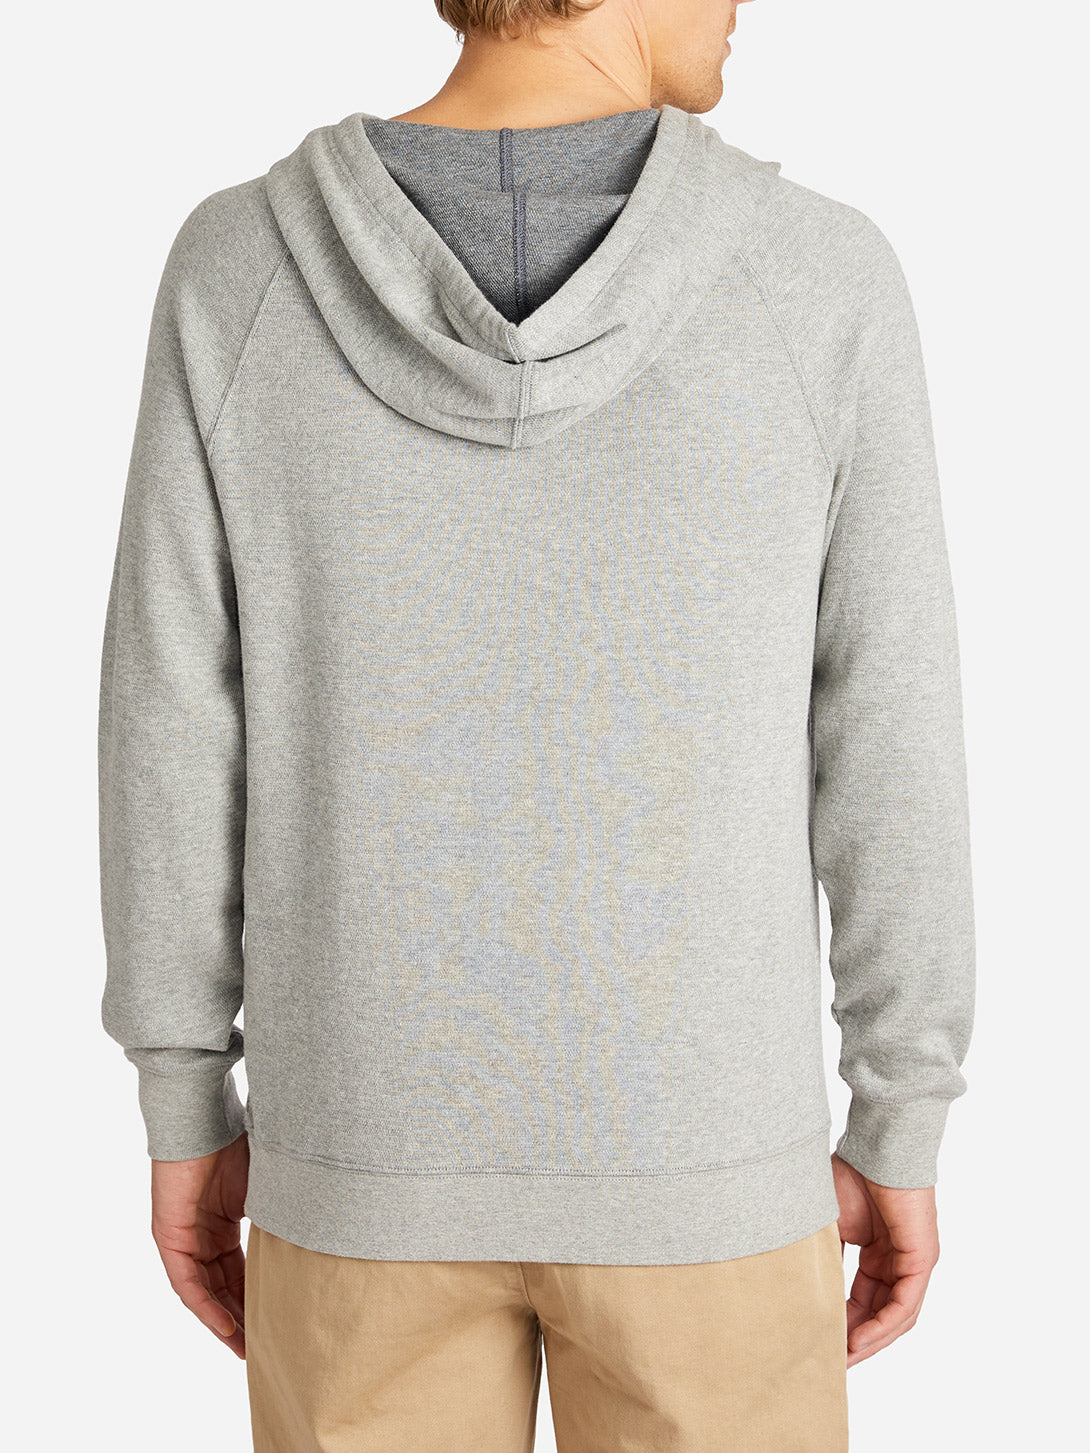 FRENCH TERRY HOODIE LT. GREY HERITAGE LINE